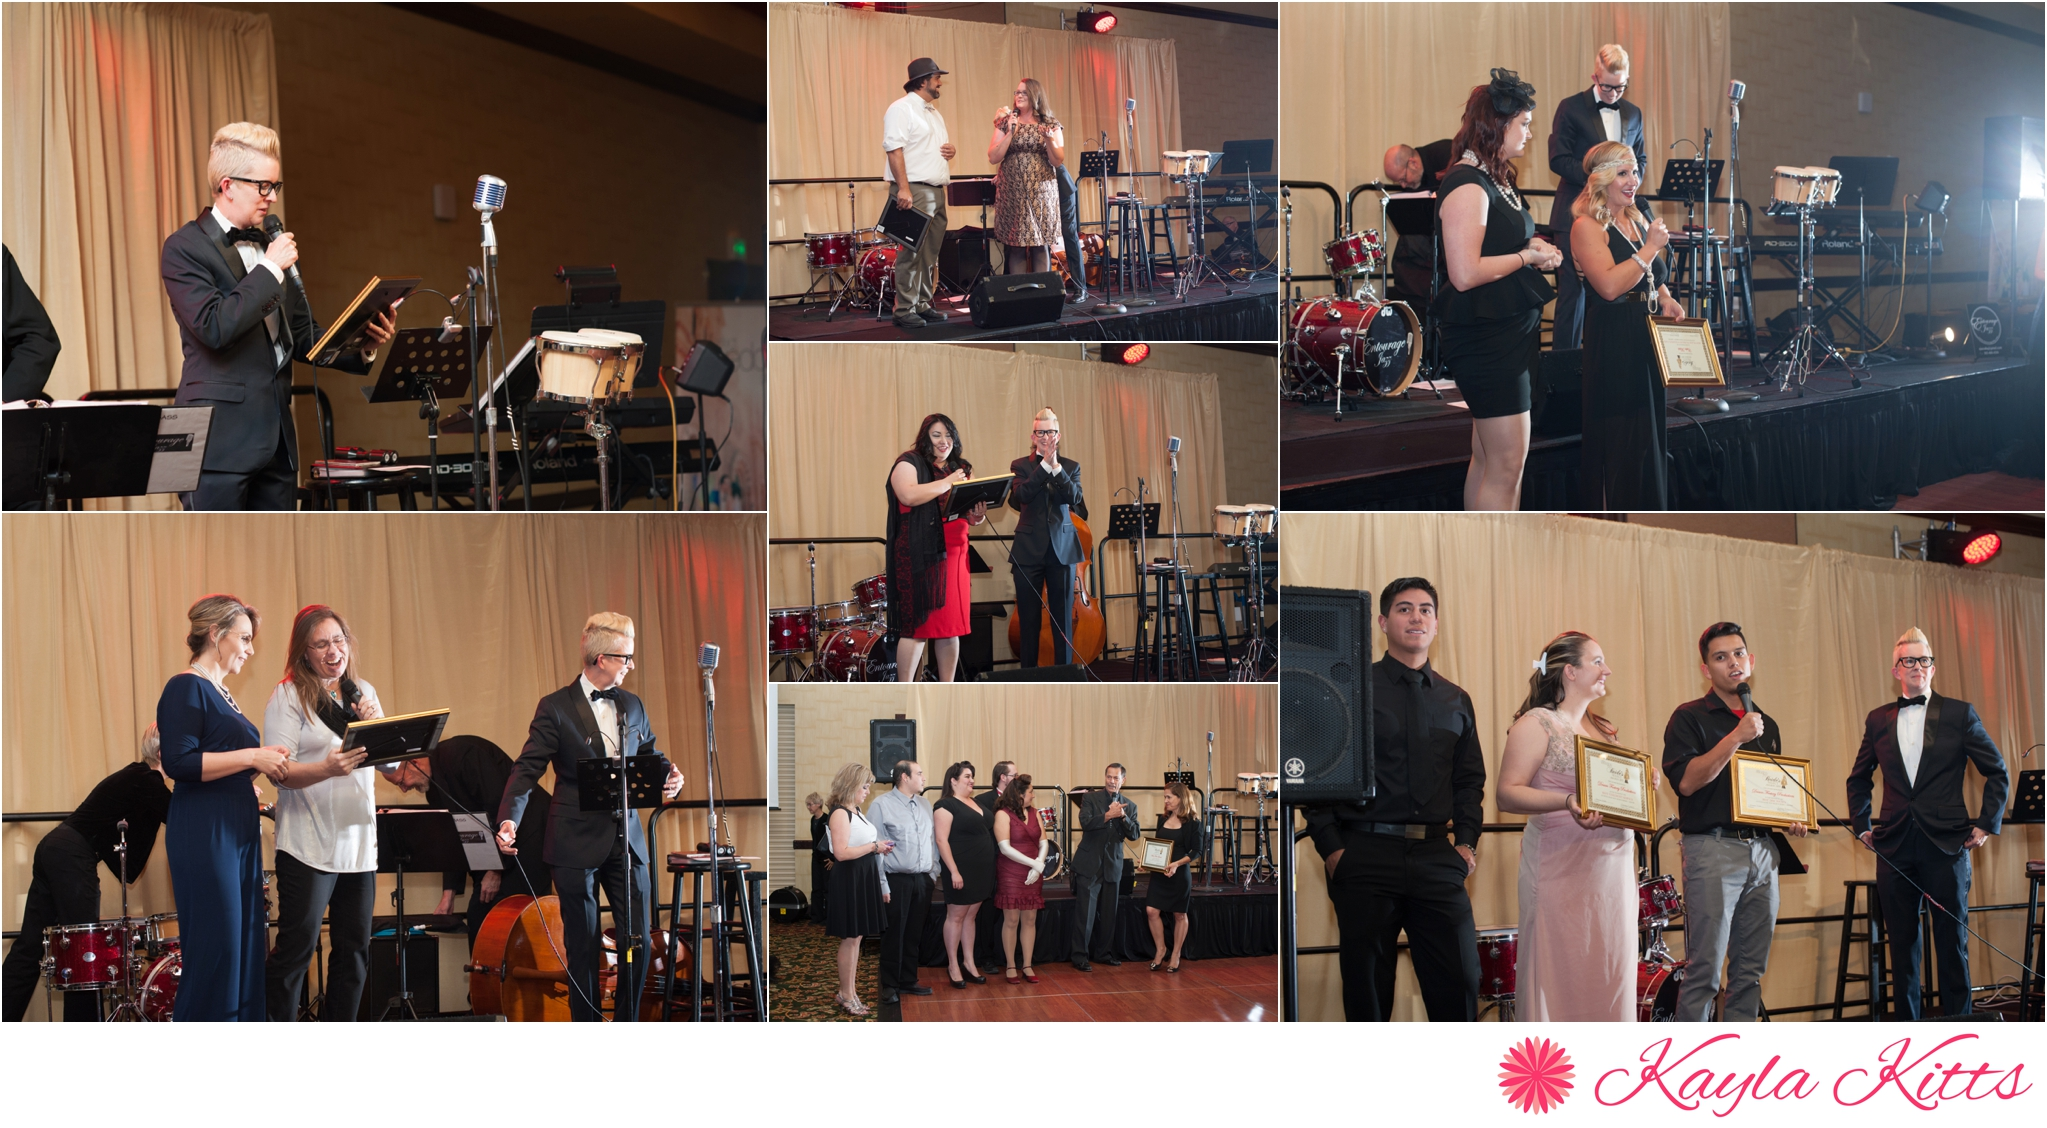 kayla kitts photography - perfect wedding guide - client appreciation party - albuqueruqe marriott_0010.jpg